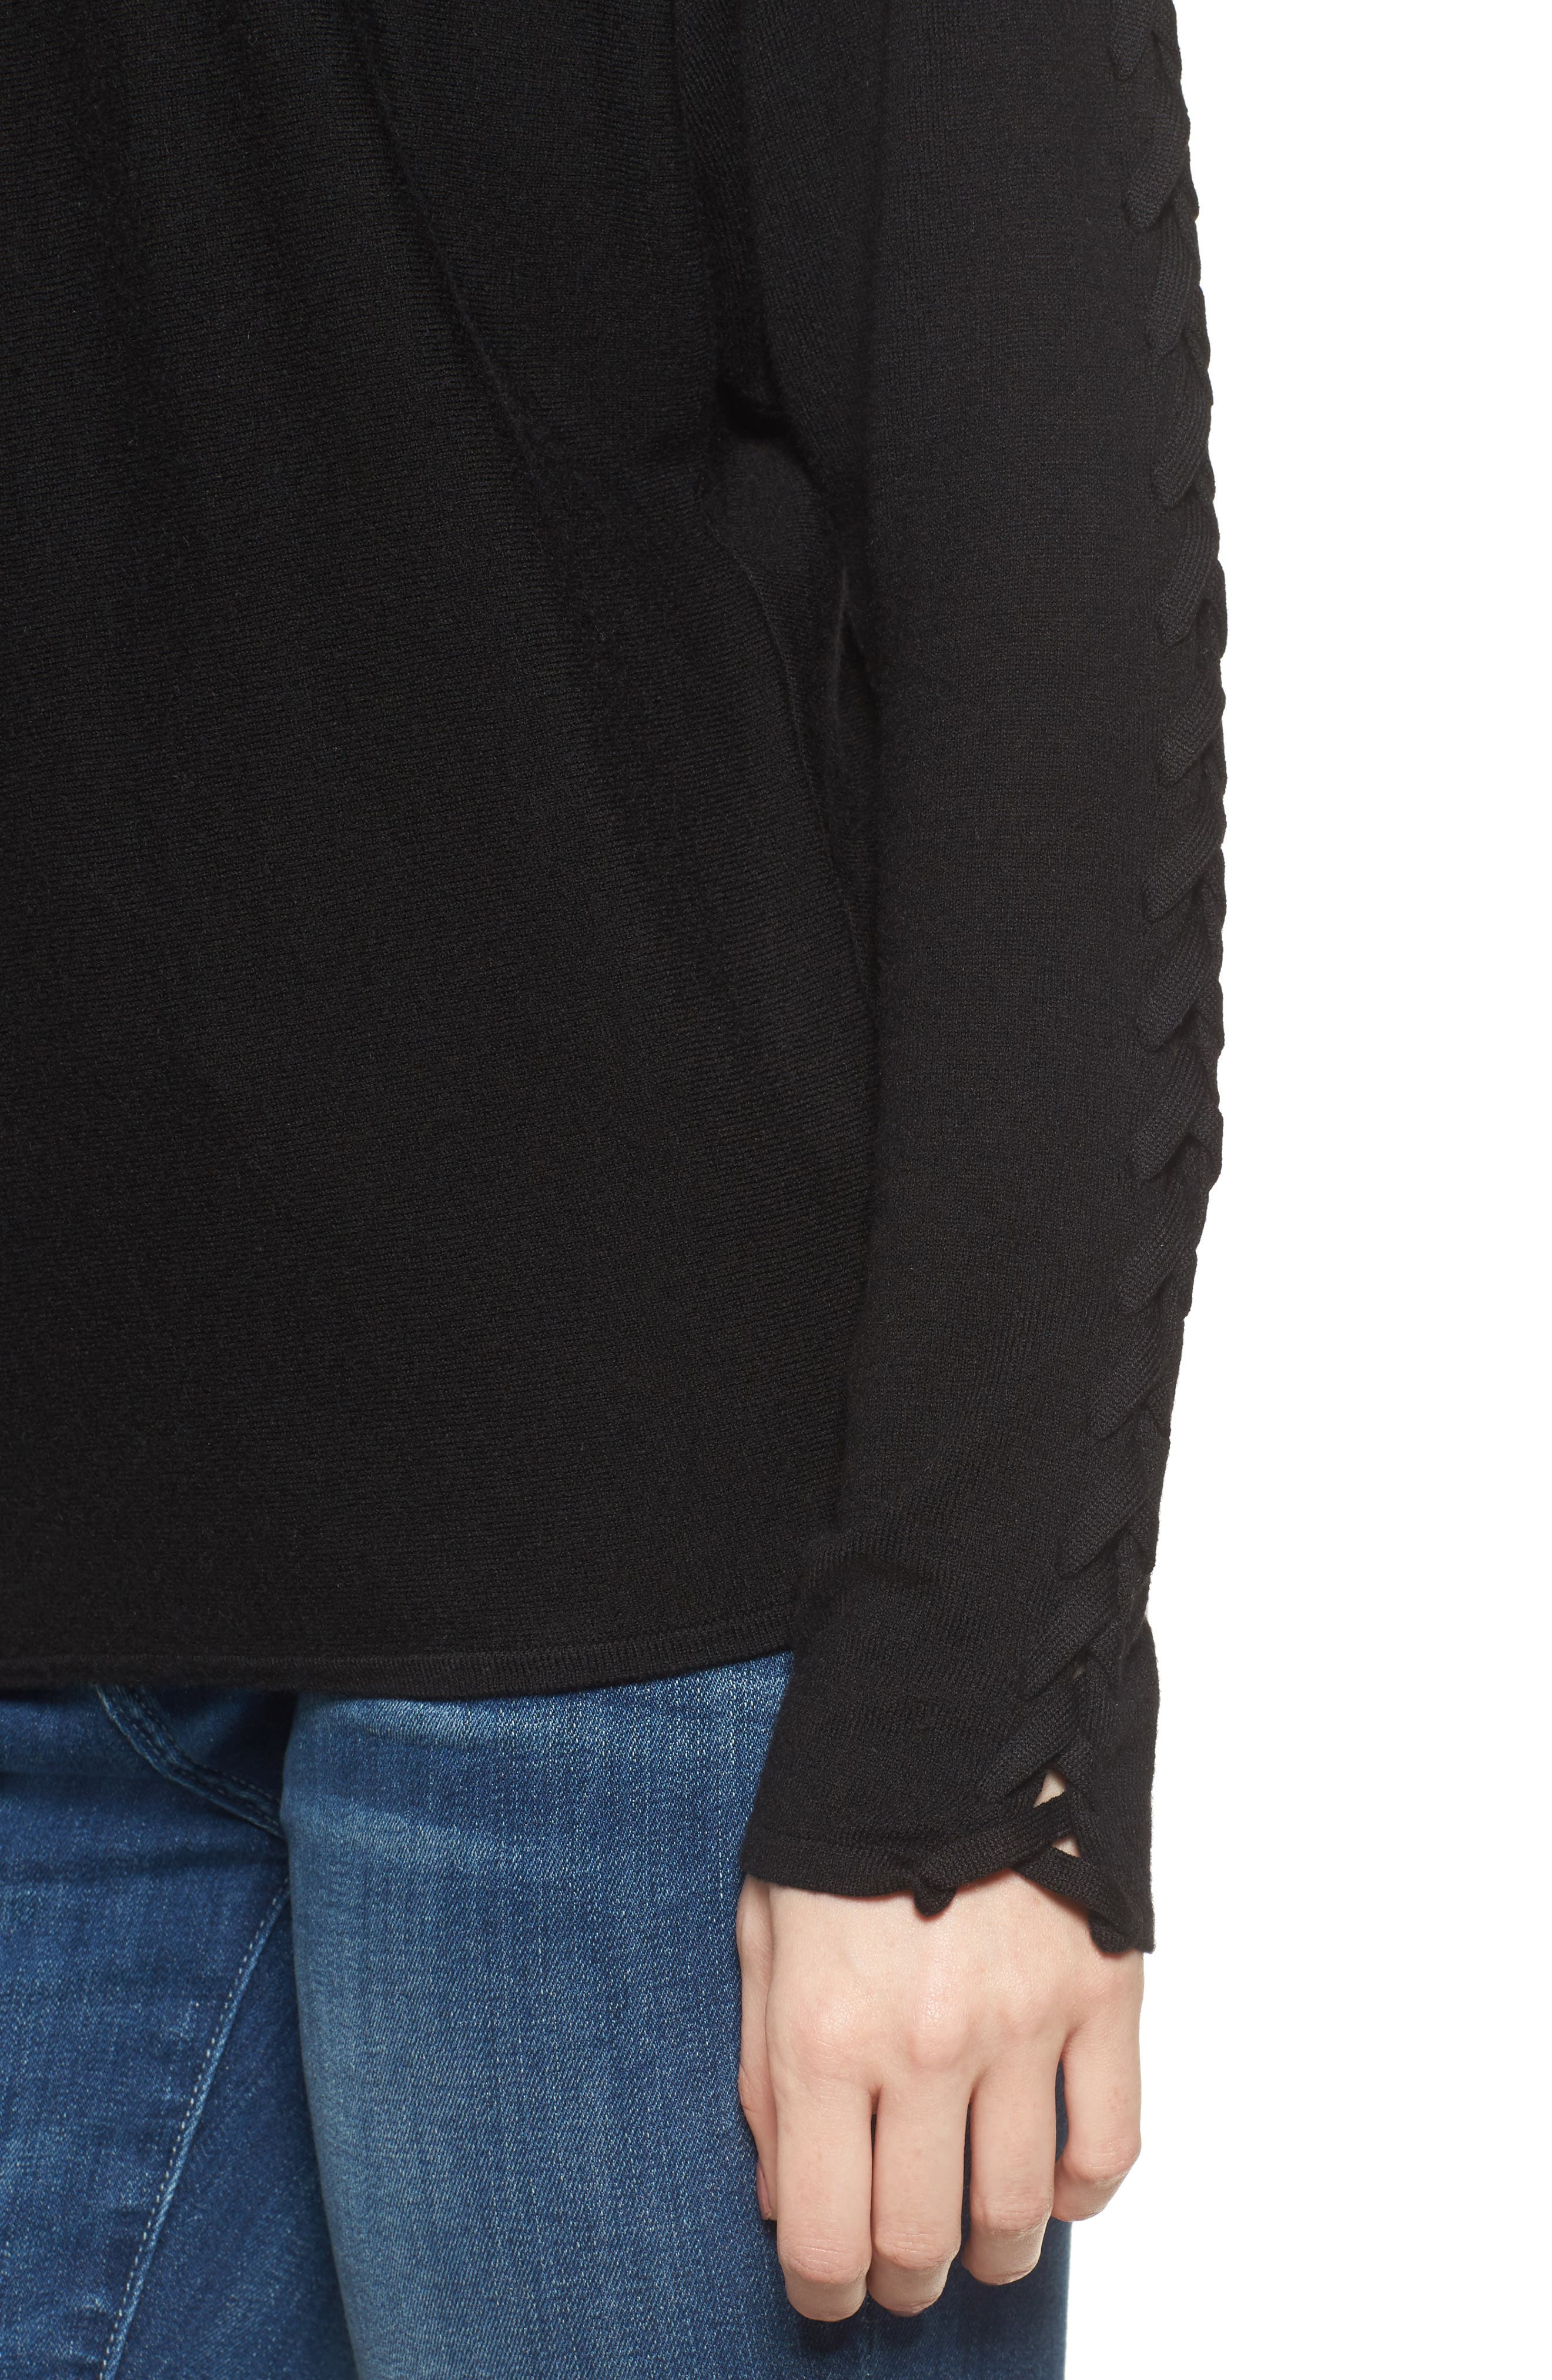 Victoire Turtleneck Sweater,                             Alternate thumbnail 7, color,